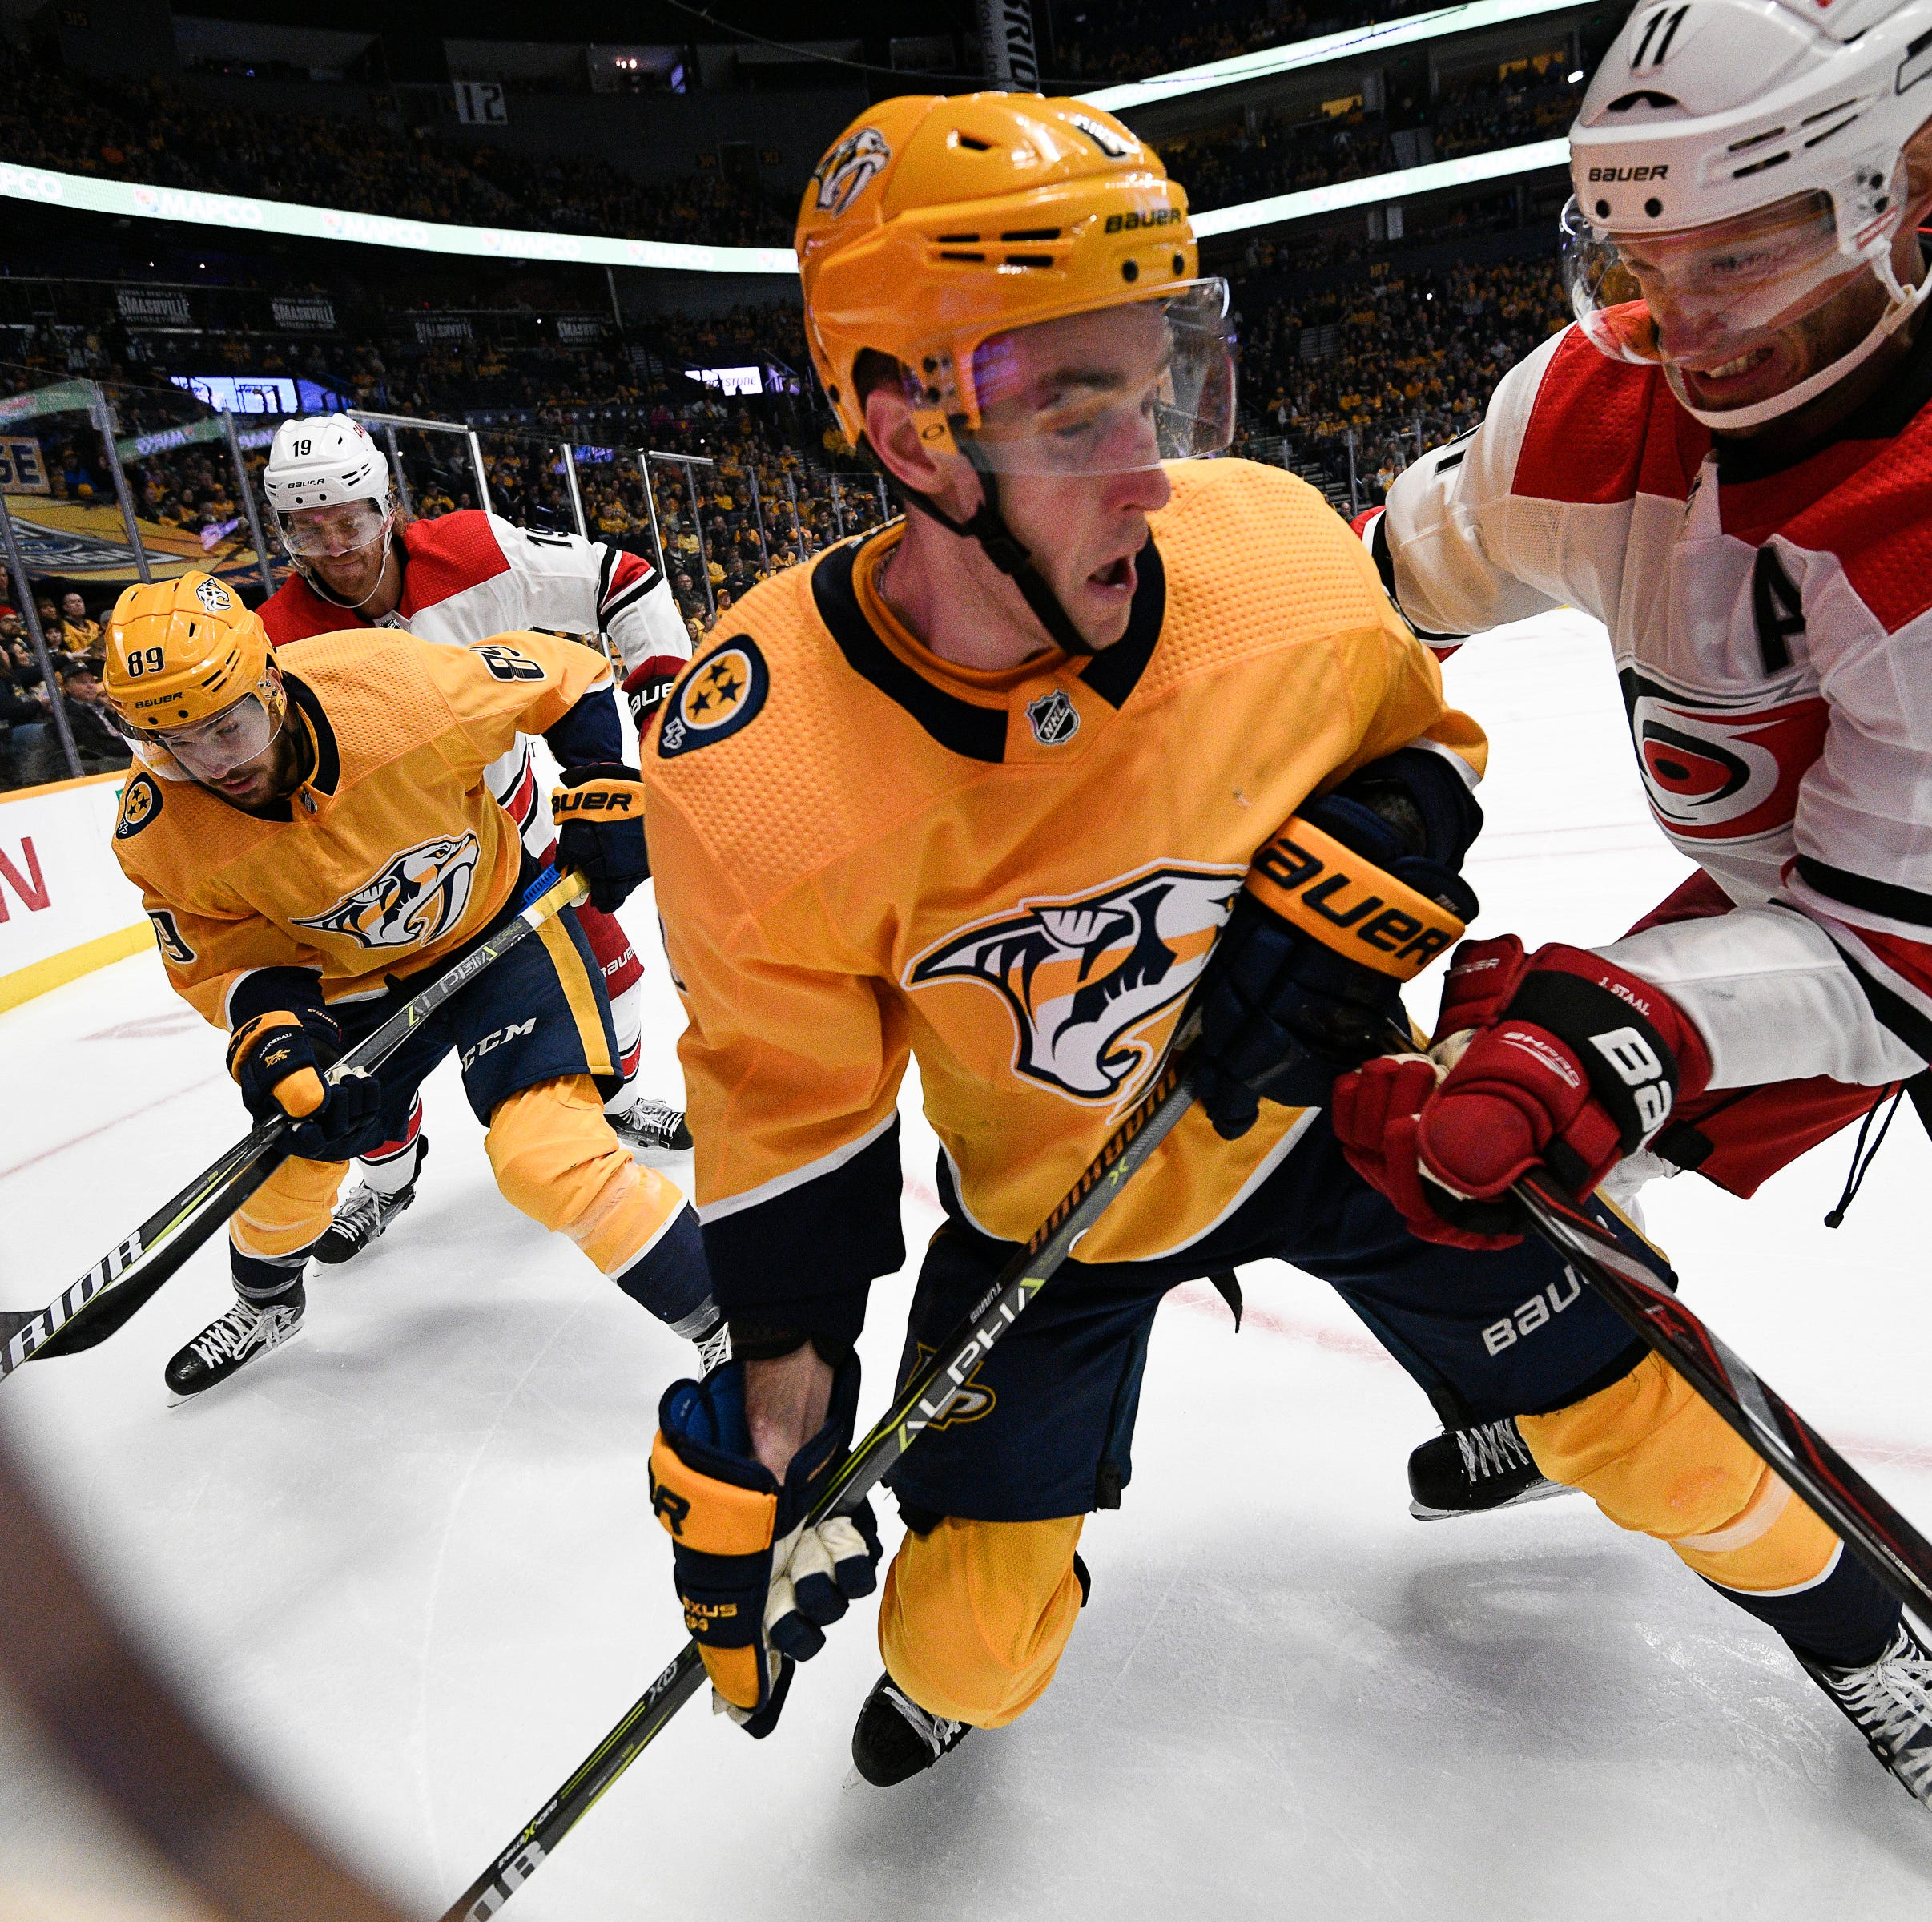 Will Kyle Turris stay with Predators or will he go?